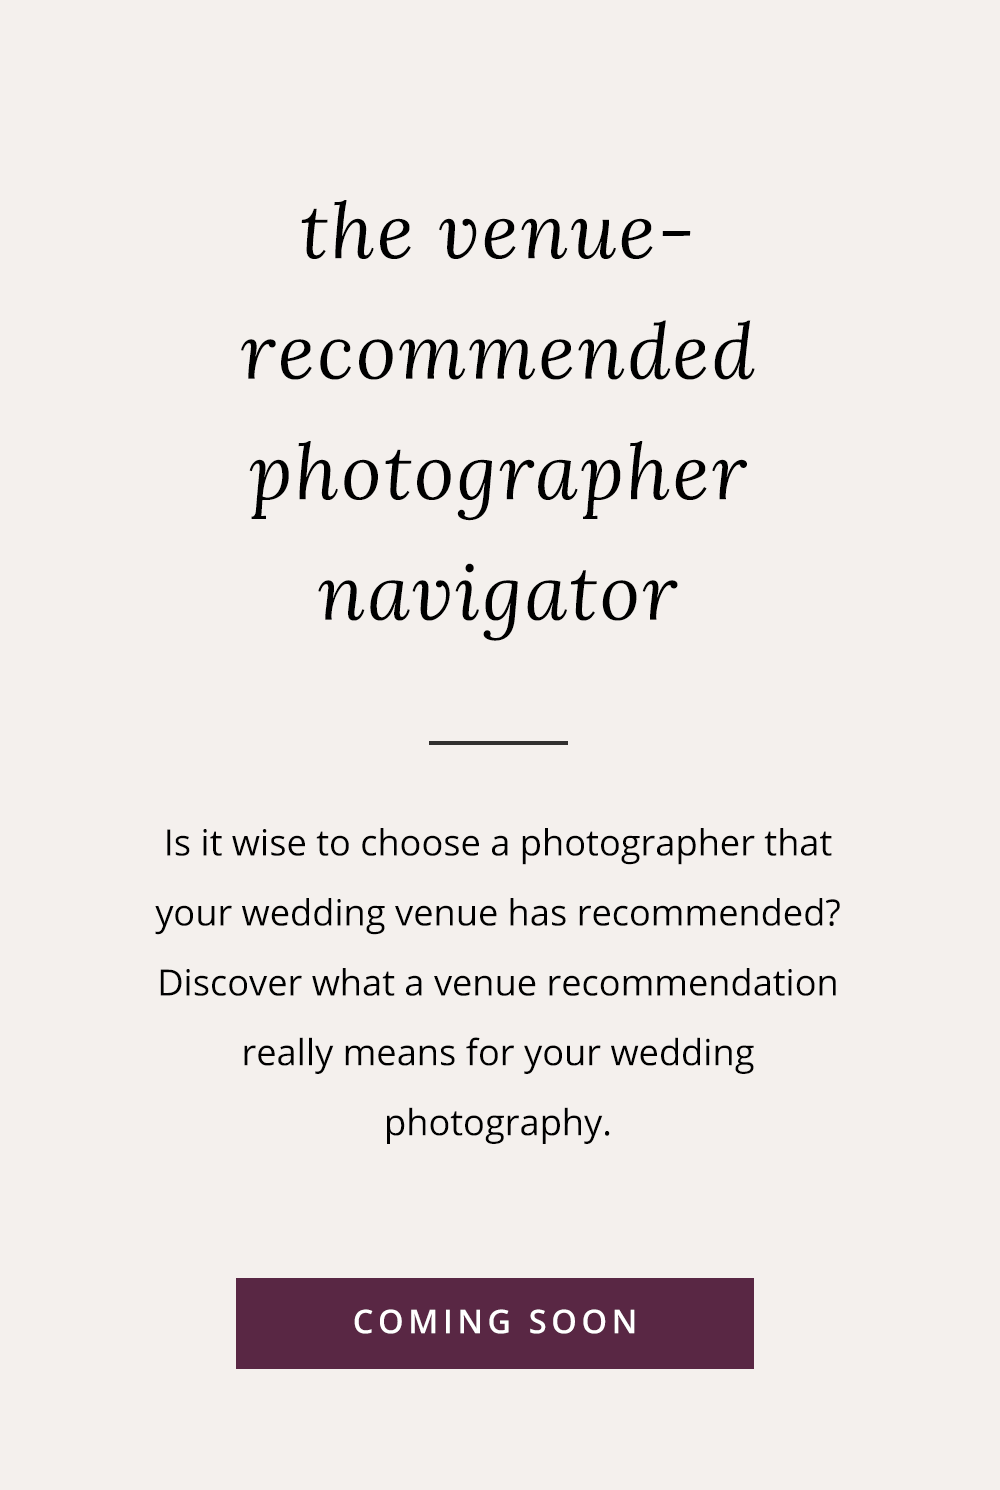 Is it a good idea to pick a photographer recommended by your wedding venue